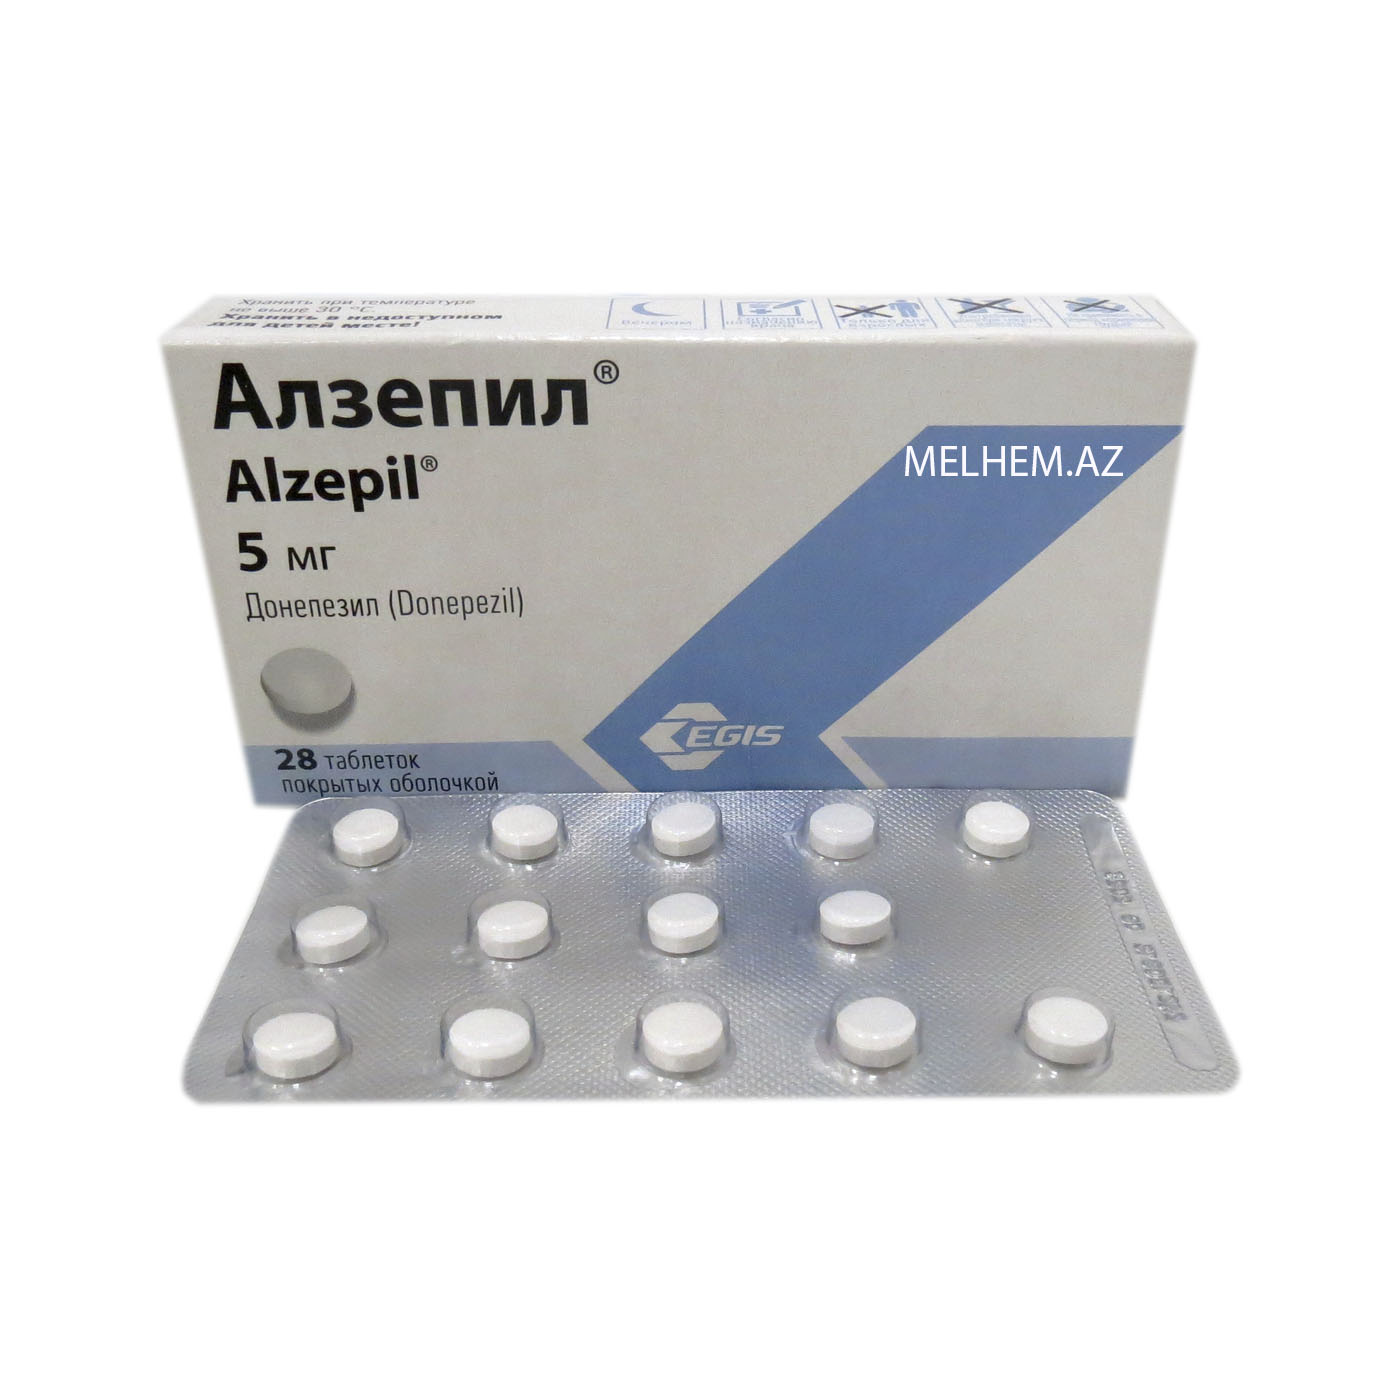 ALZEPIL 5 MG